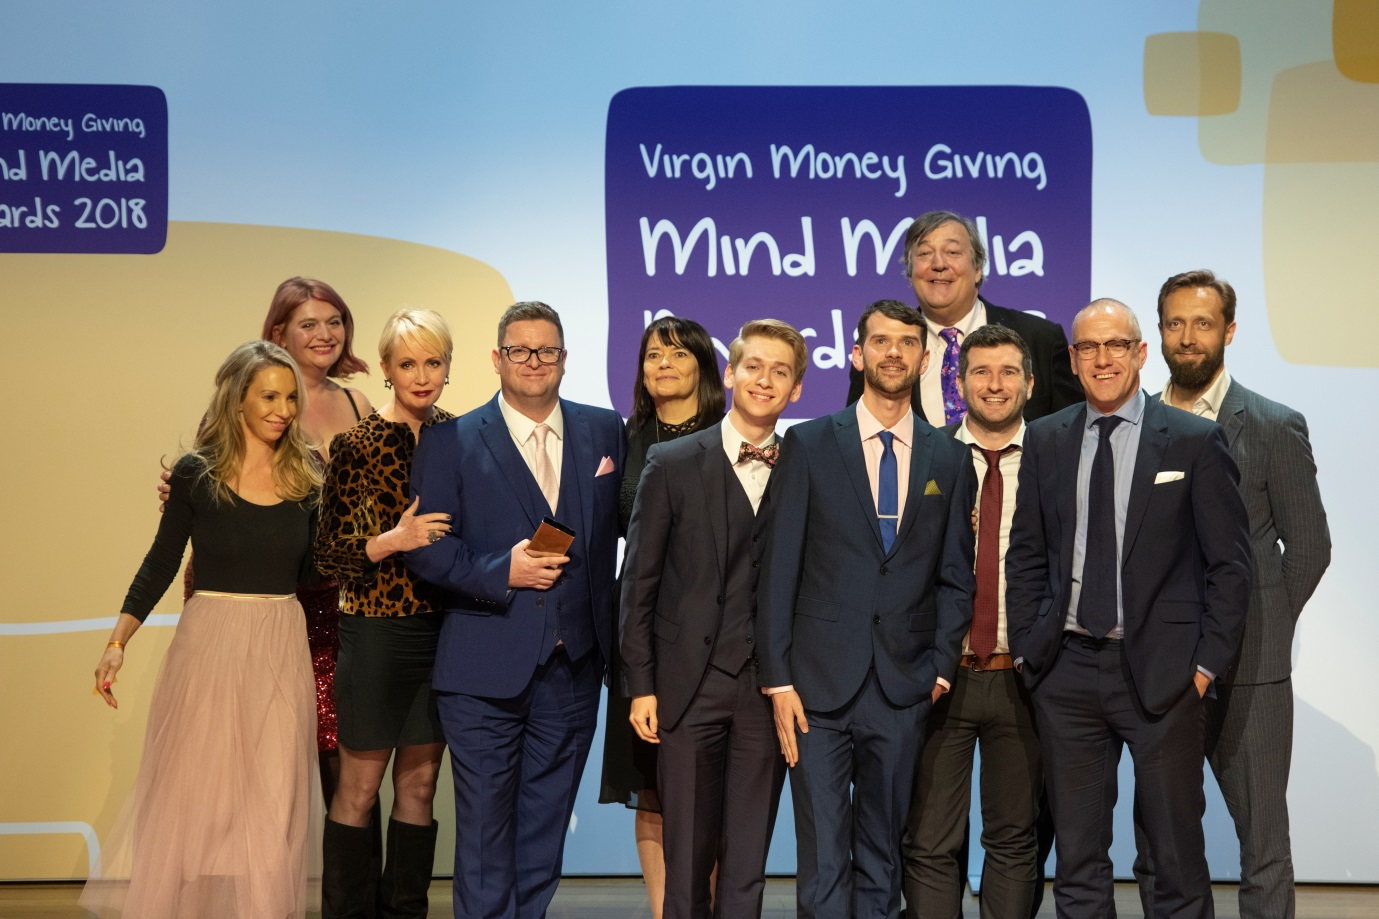 Hollyoaks Wins 'Making a Difference' Award at Virgin Money Giving Mind Media Award 2018